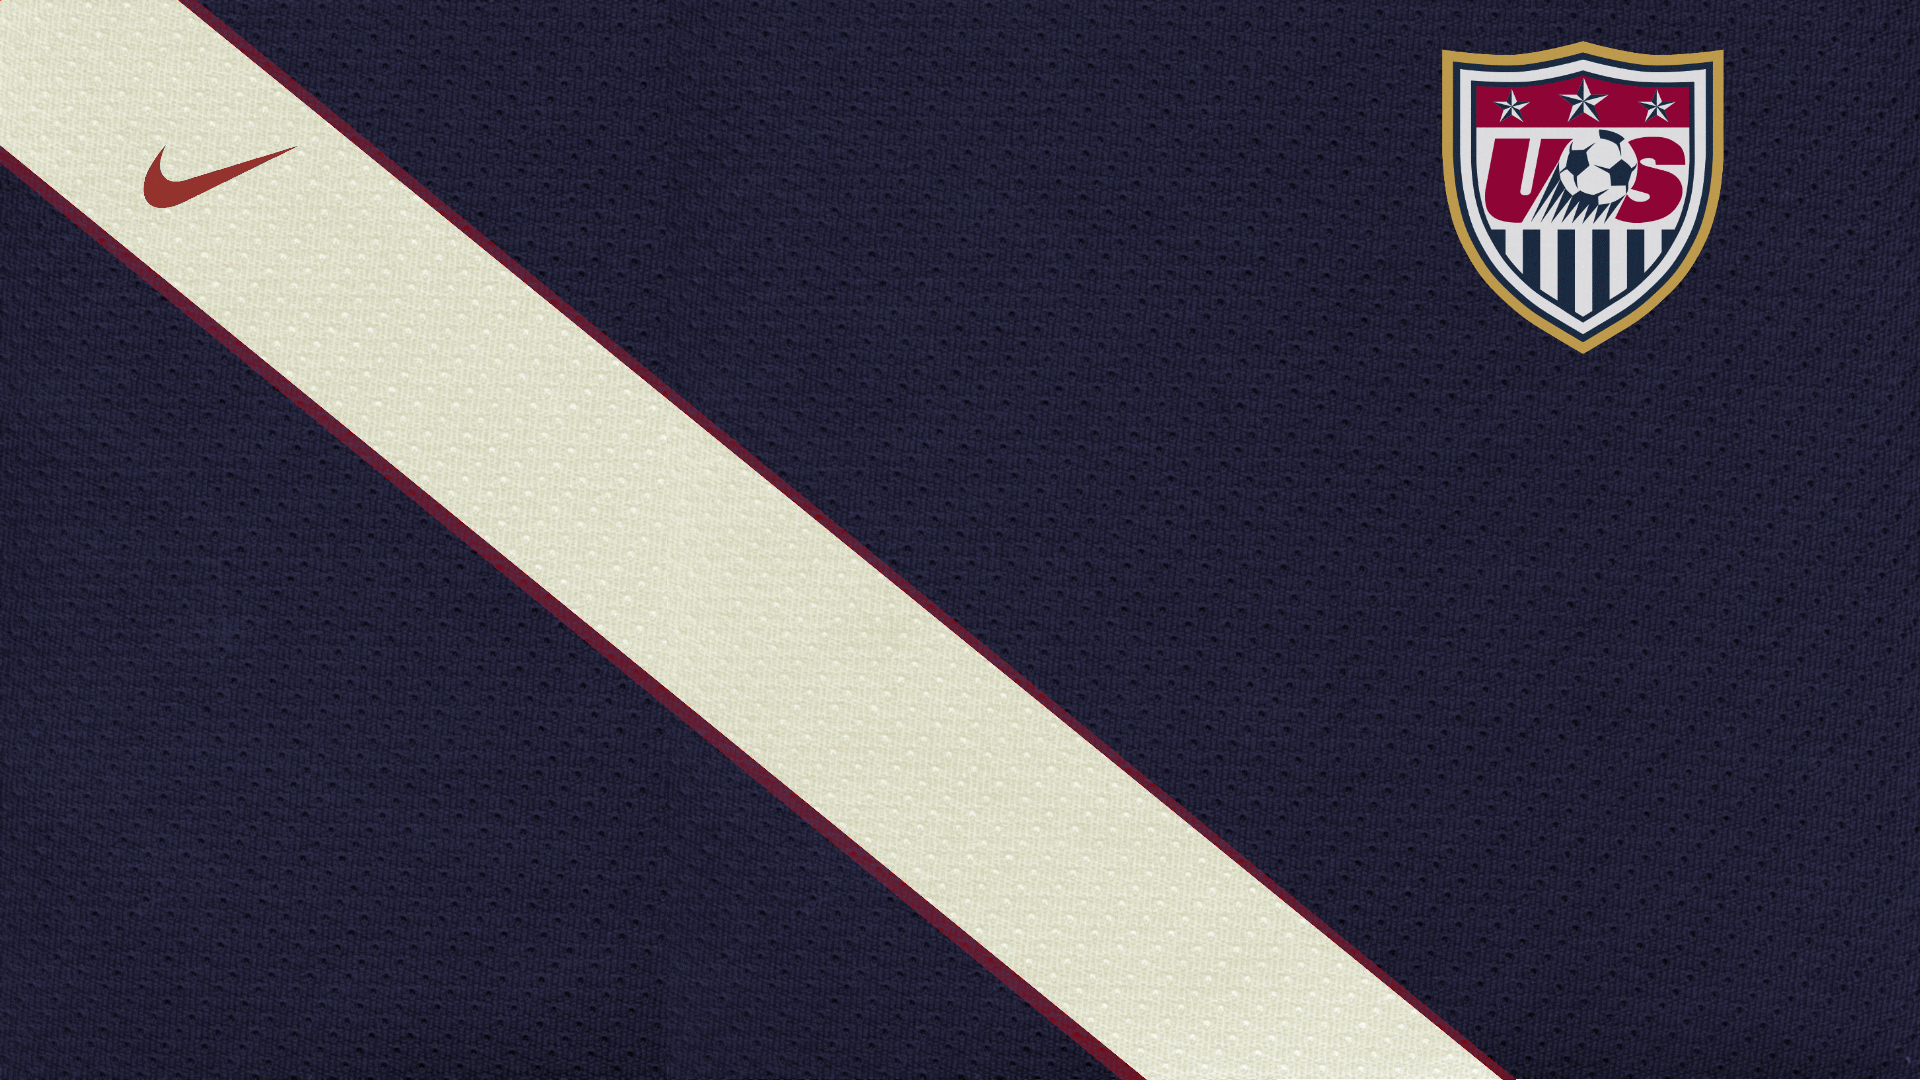 US Soccer Wallpapers 1920x1080